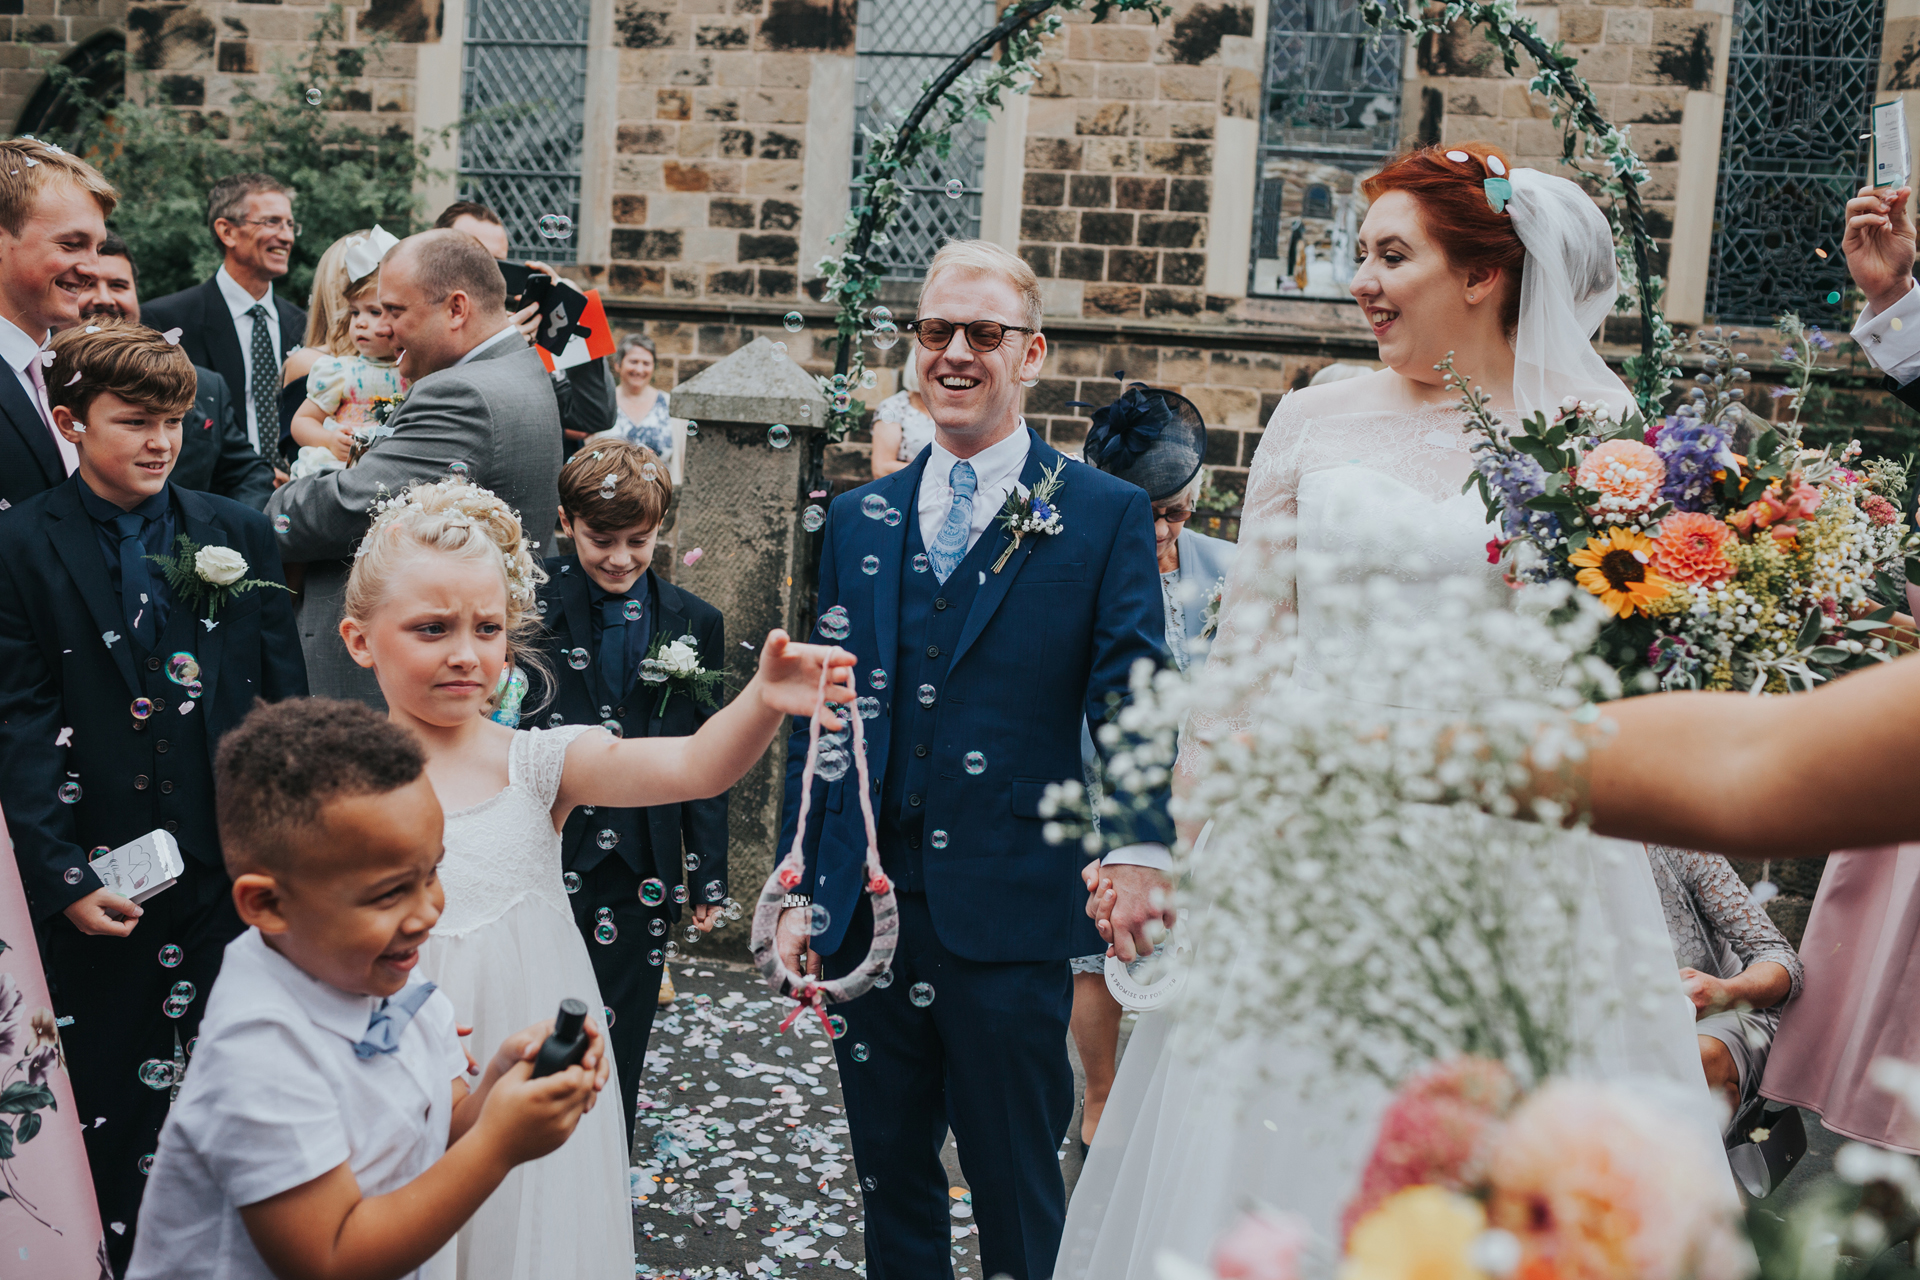 Confetti and bubbles surround bride and groom as they laugh.